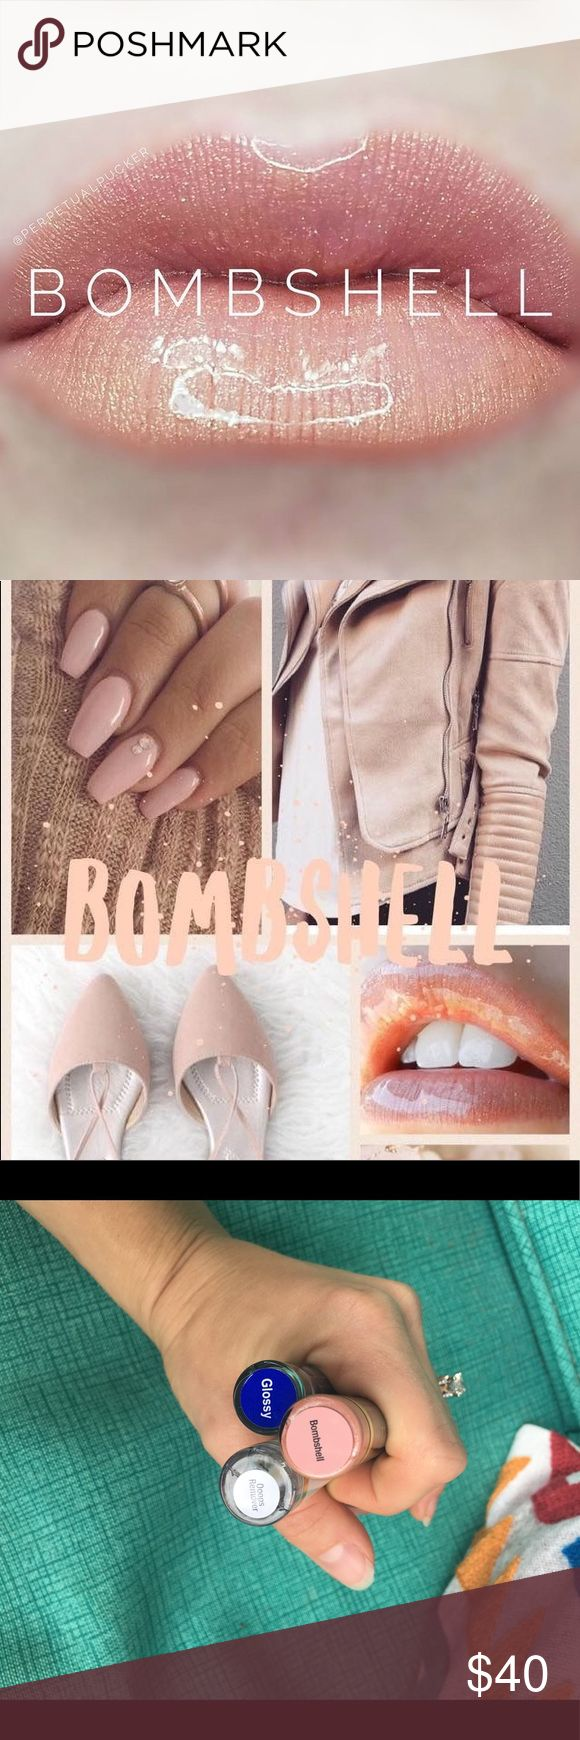 Bombshell Lip Sense Kit Selling a brand new & sealed bombshell Lip Sense Kit. Comes with color, oops remover & glossy. All essential for proper application. Lipstick that stays on for 18 hours! Retails for $55 selling for $42 lip sense Makeup Lipstick